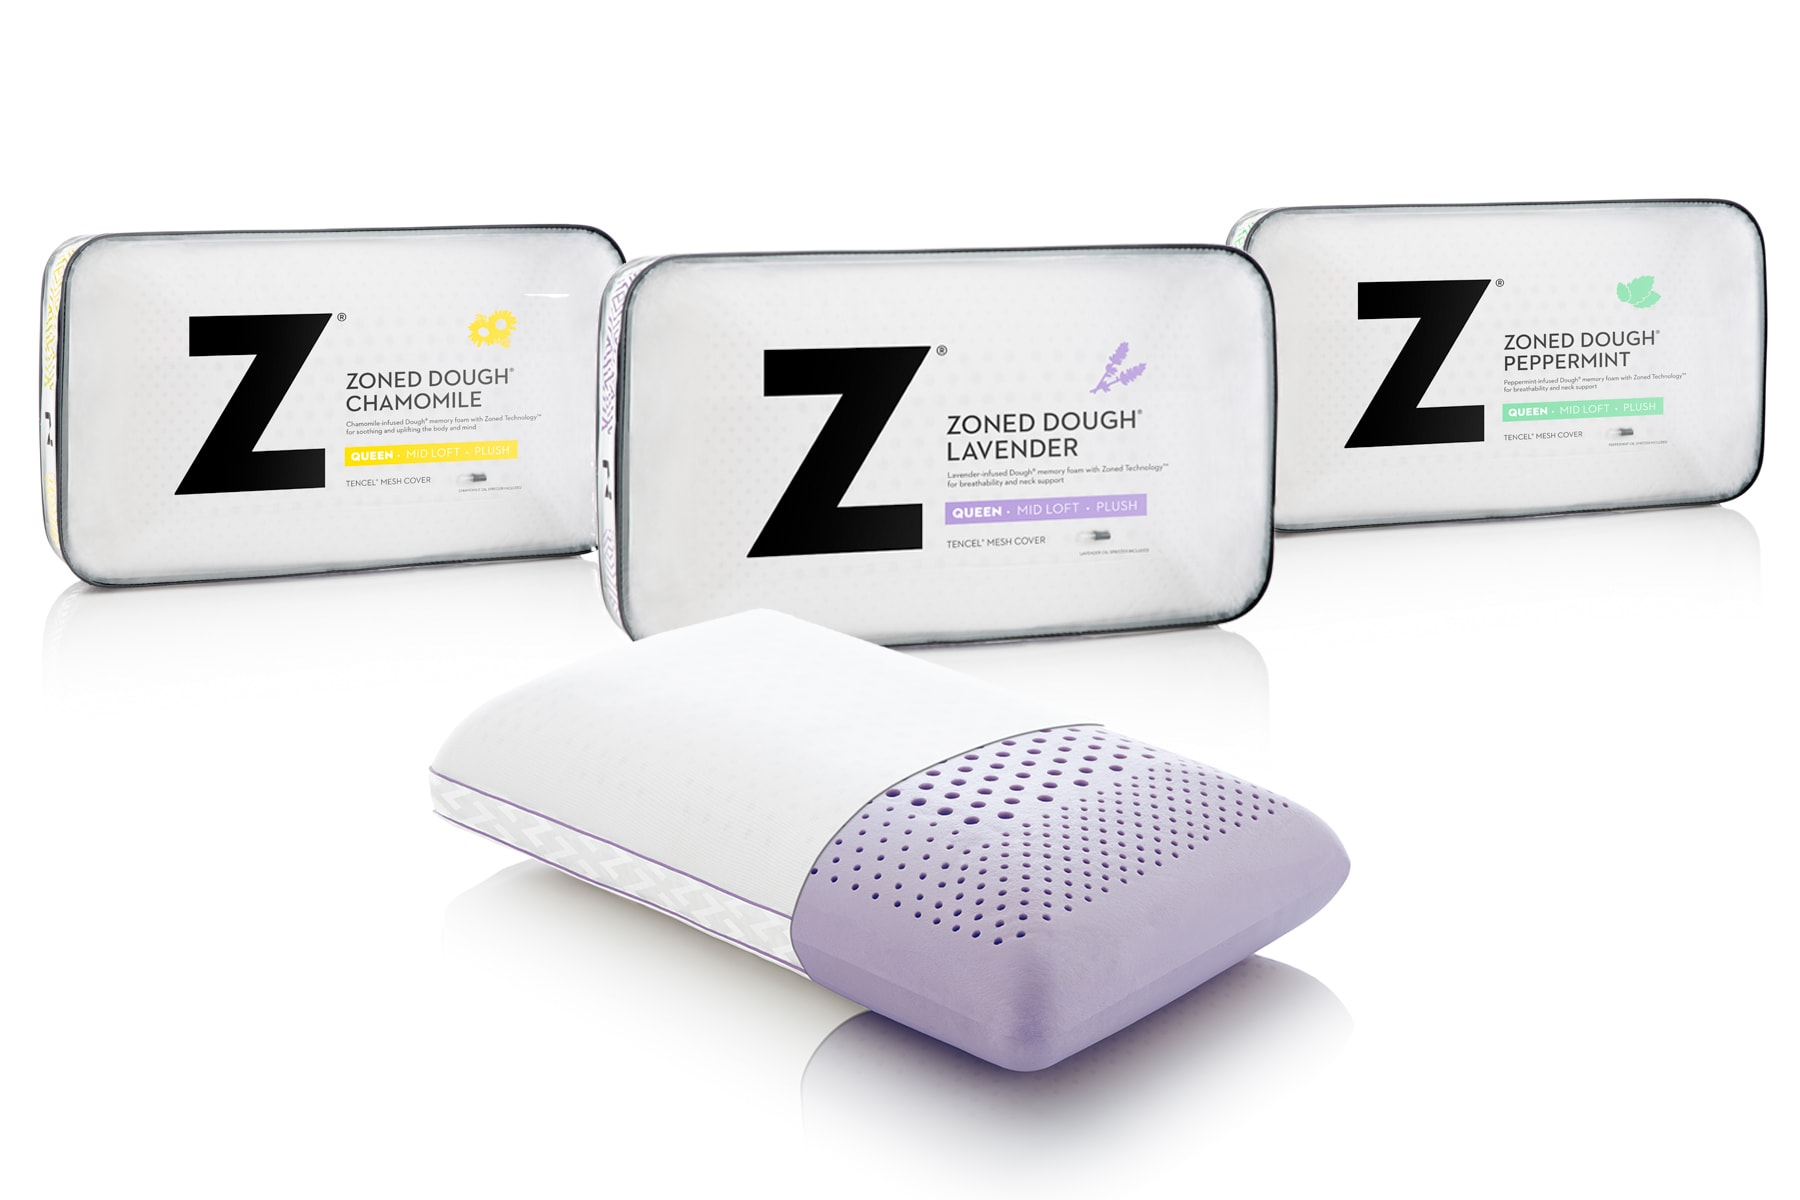 high quality memory foam pillows from Malouf